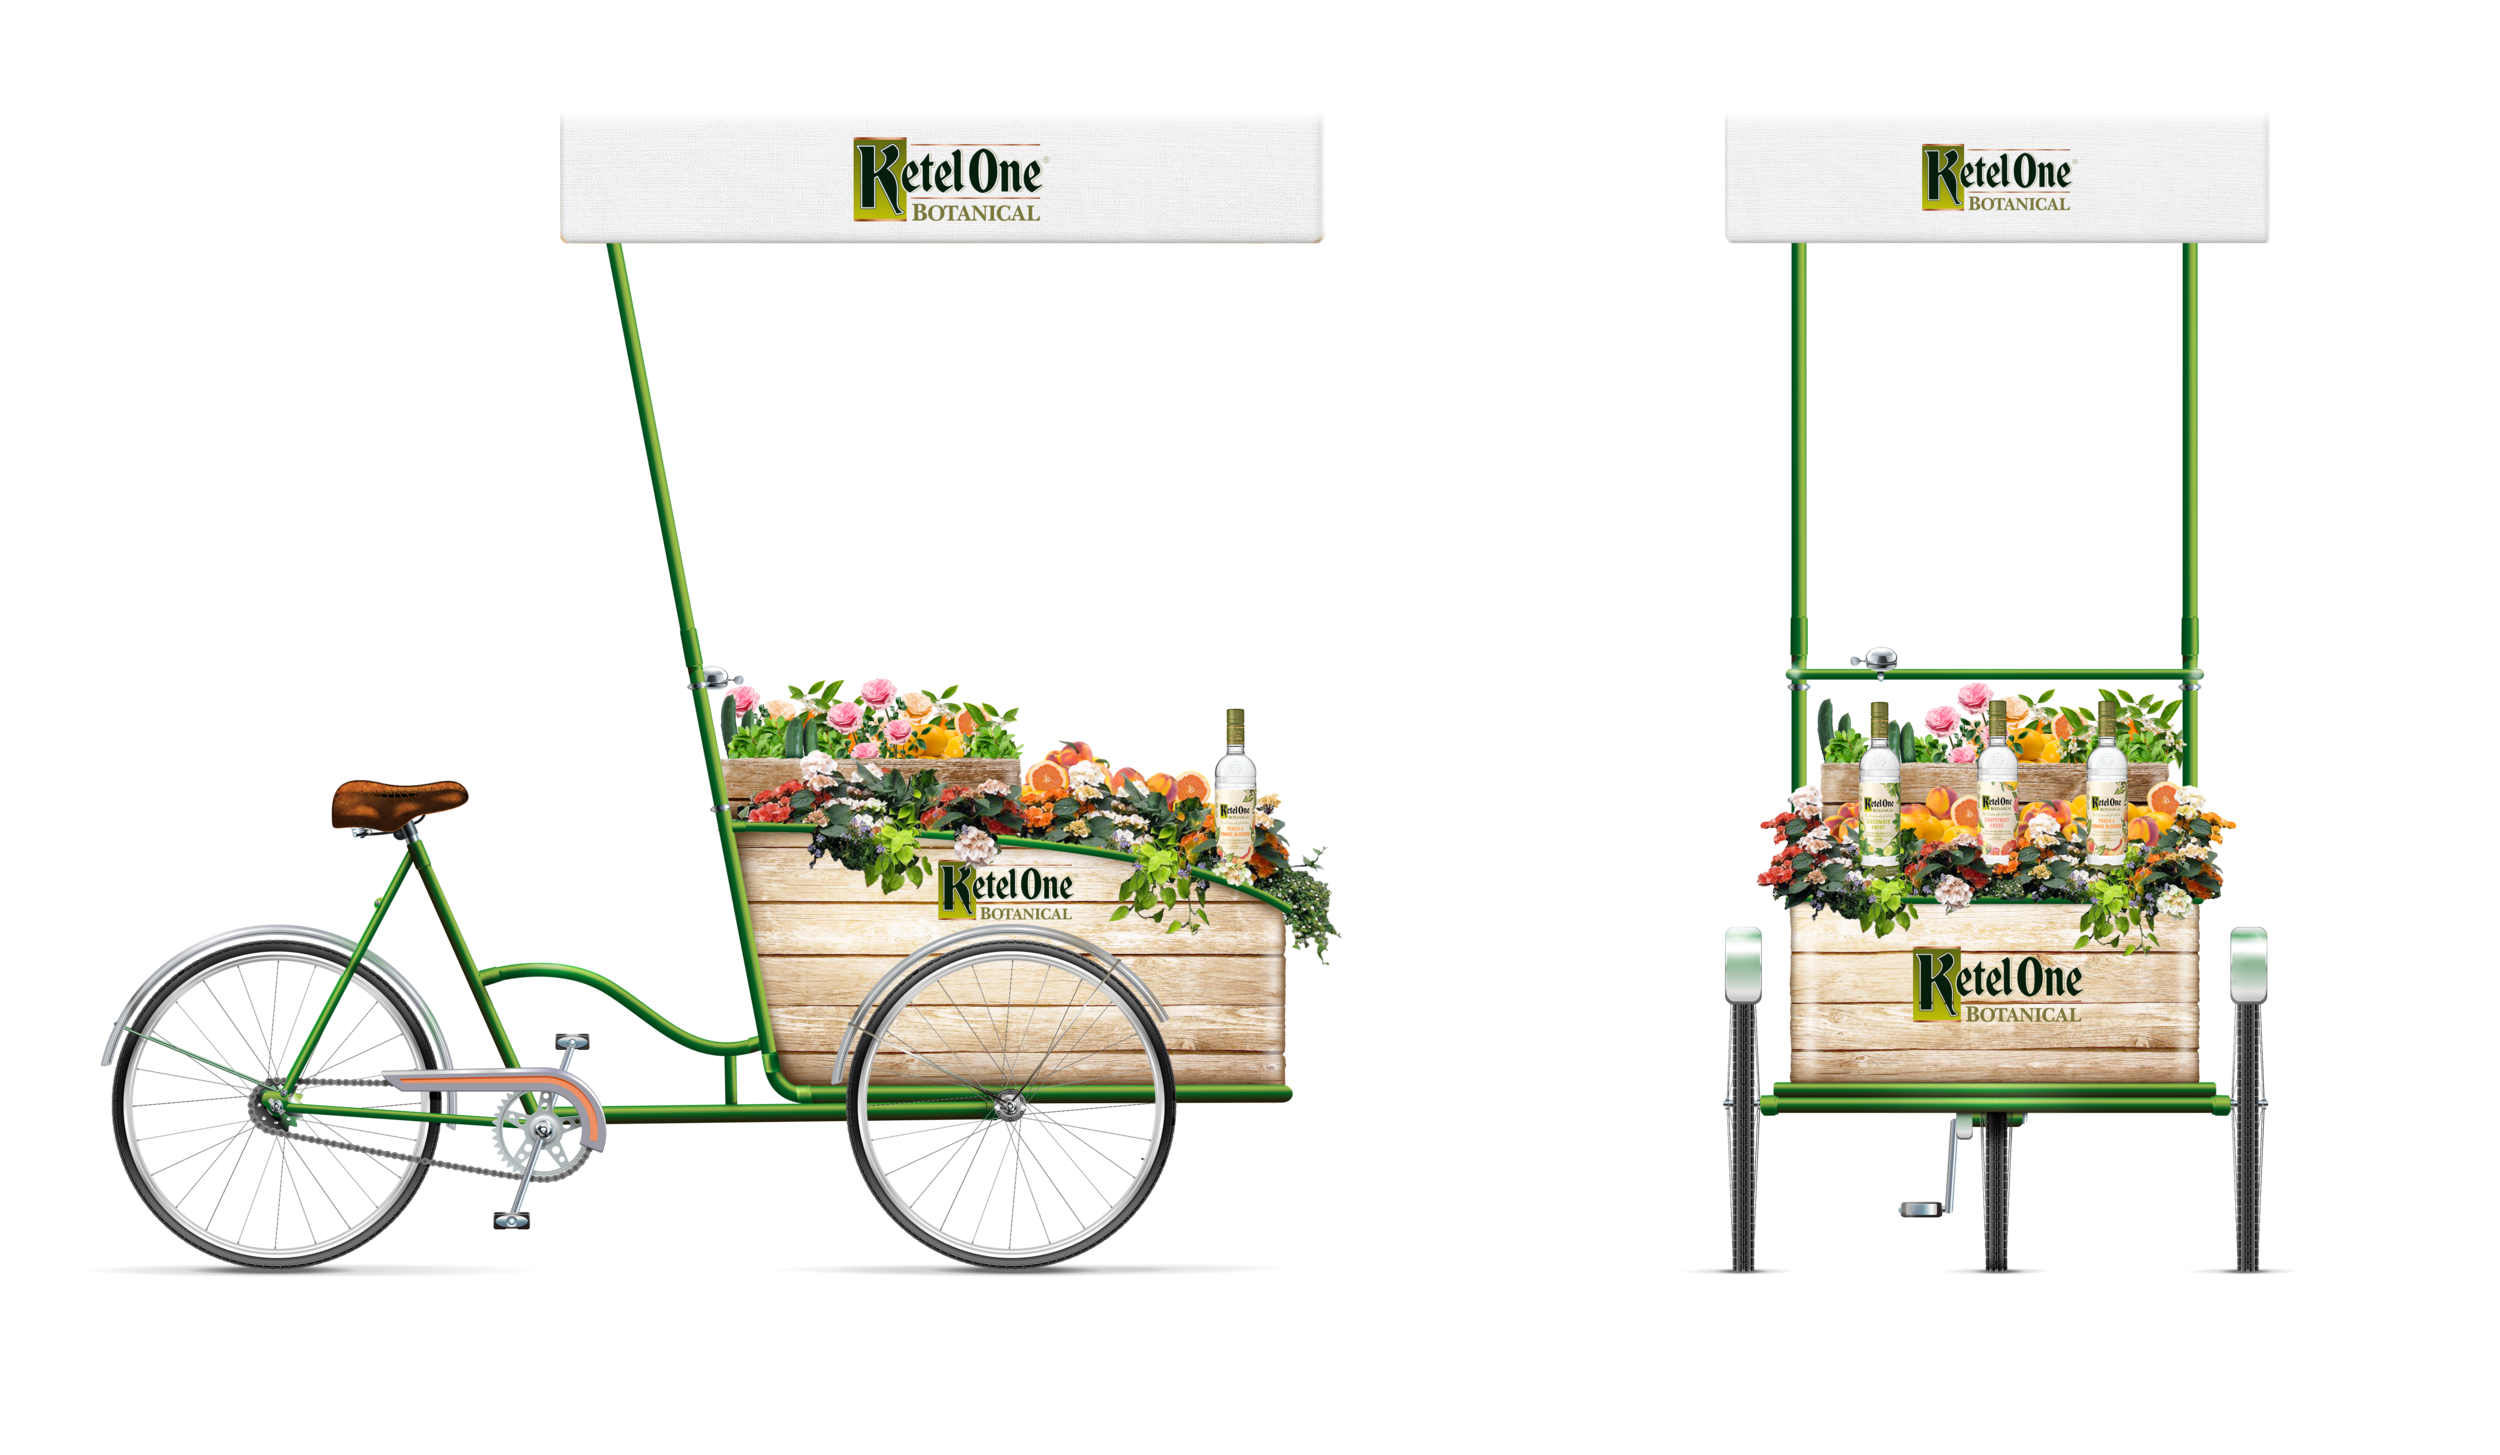 Ketel one Botanical_Bicycle_190201.png